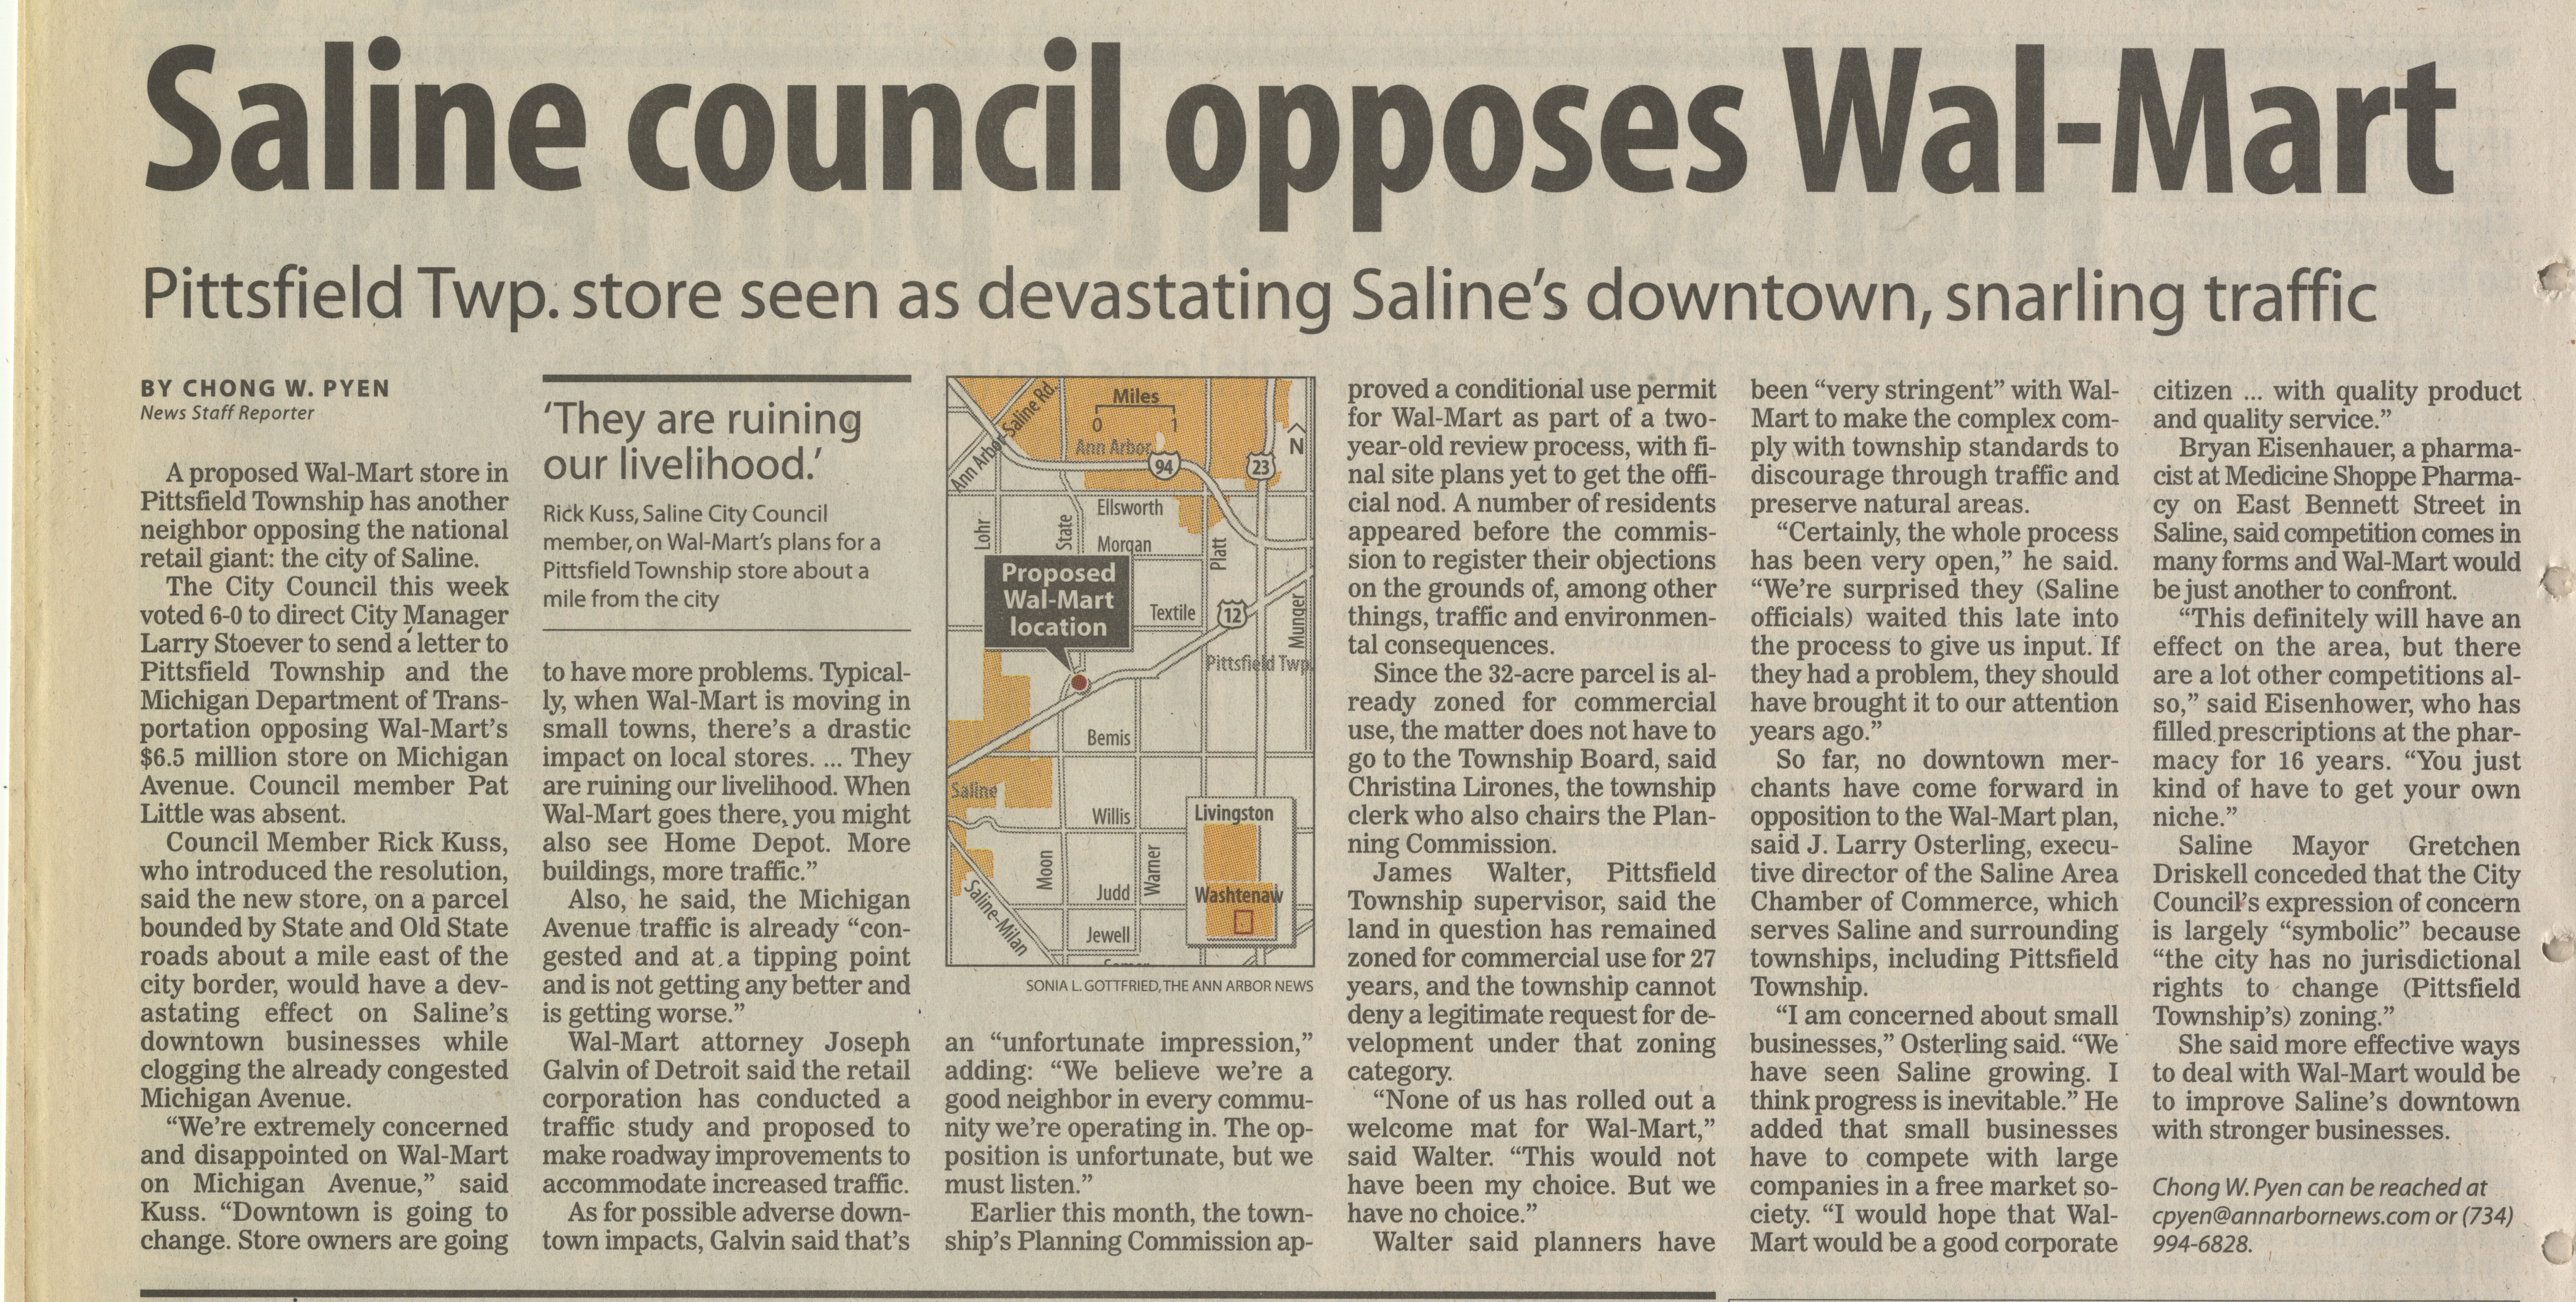 Saline Council Opposes Wal-Mart image